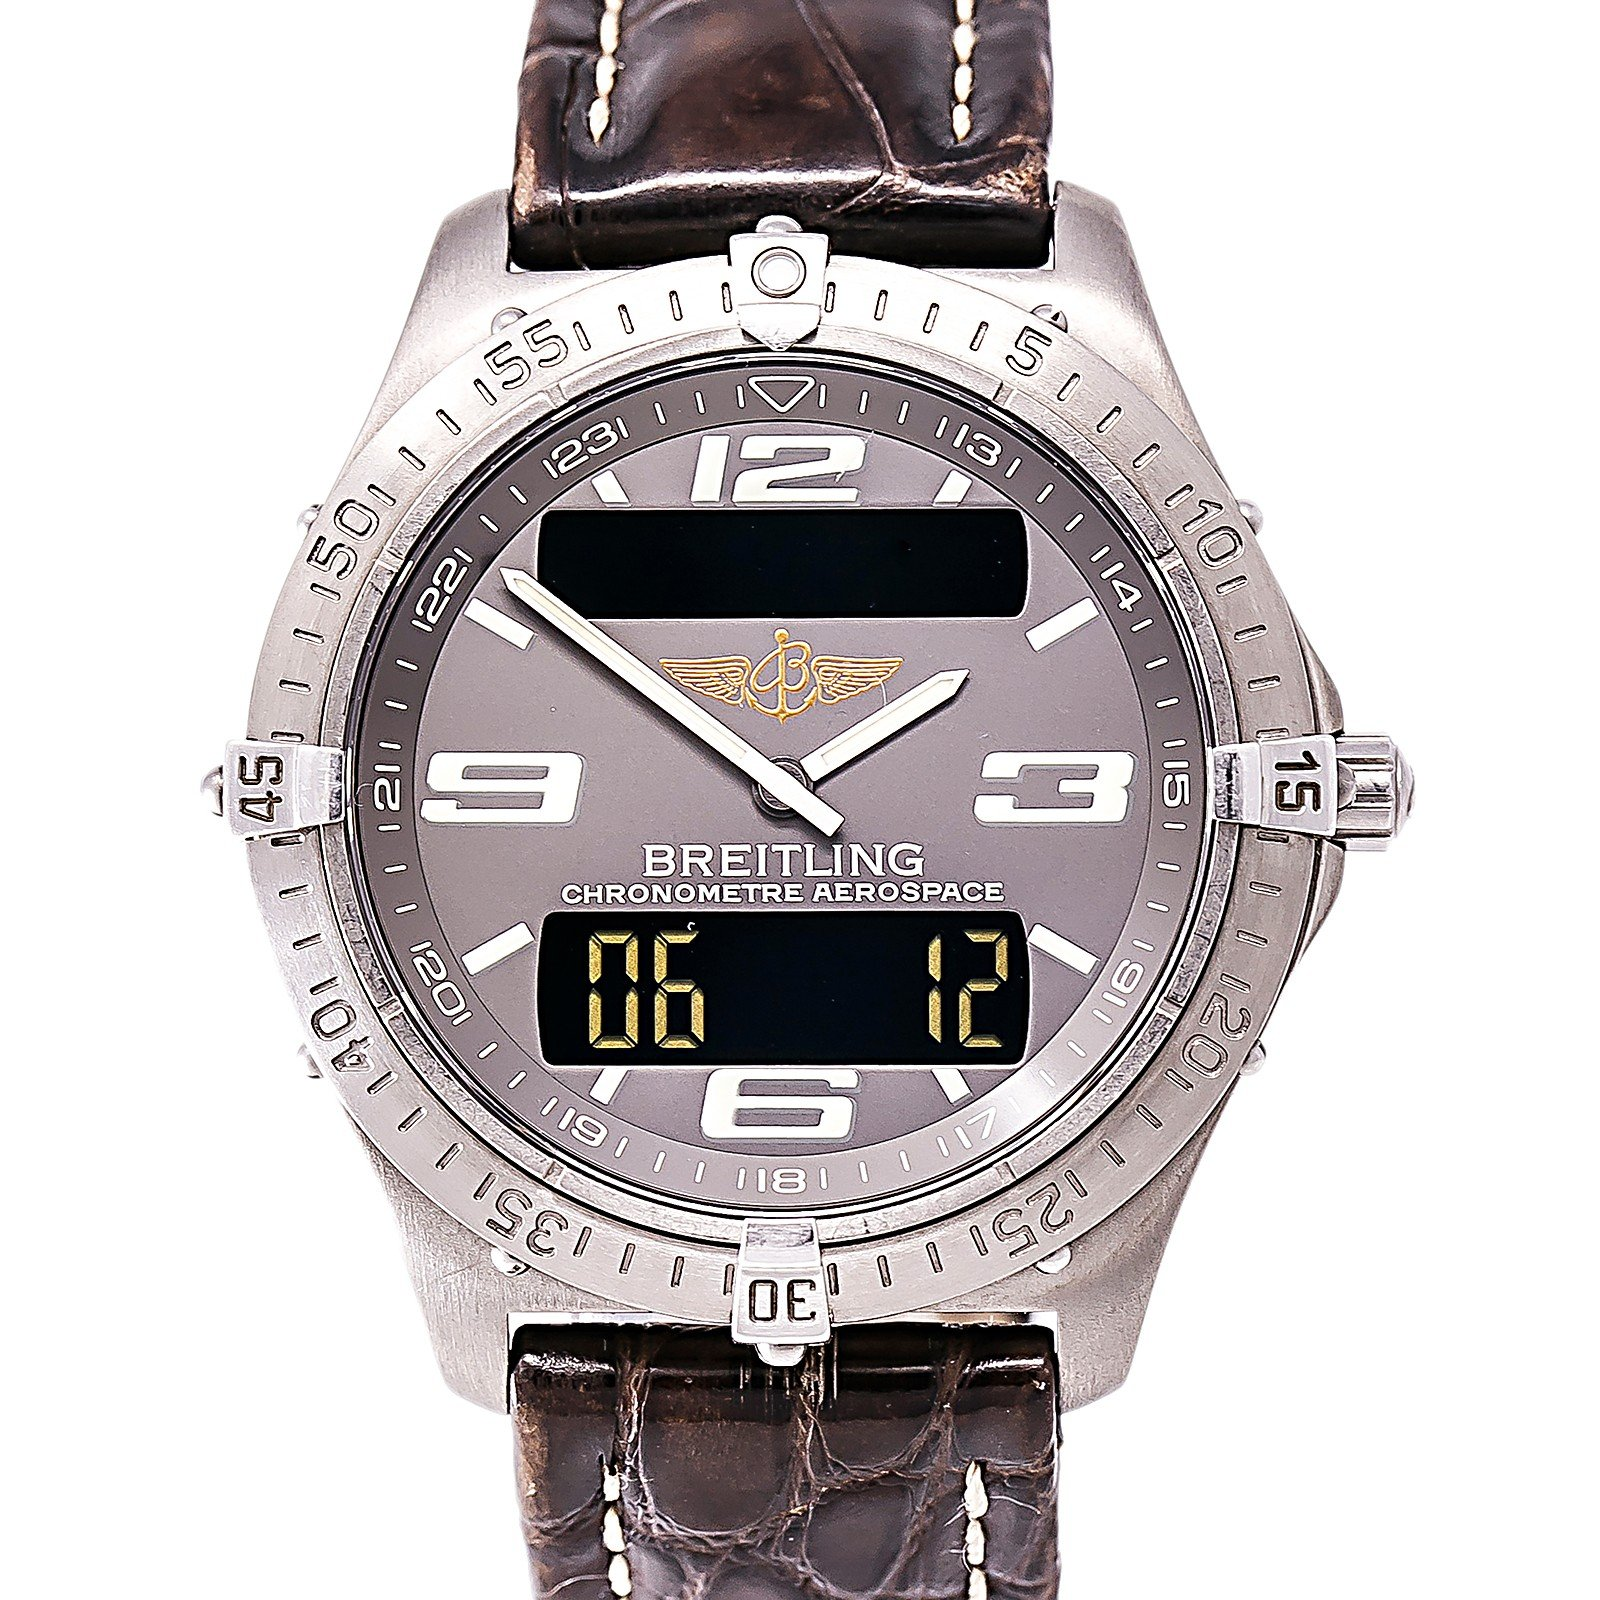 Breitling Aerospace quartz mens Watch E75362 (Certified Pre-owned) by Breitling (Image #4)